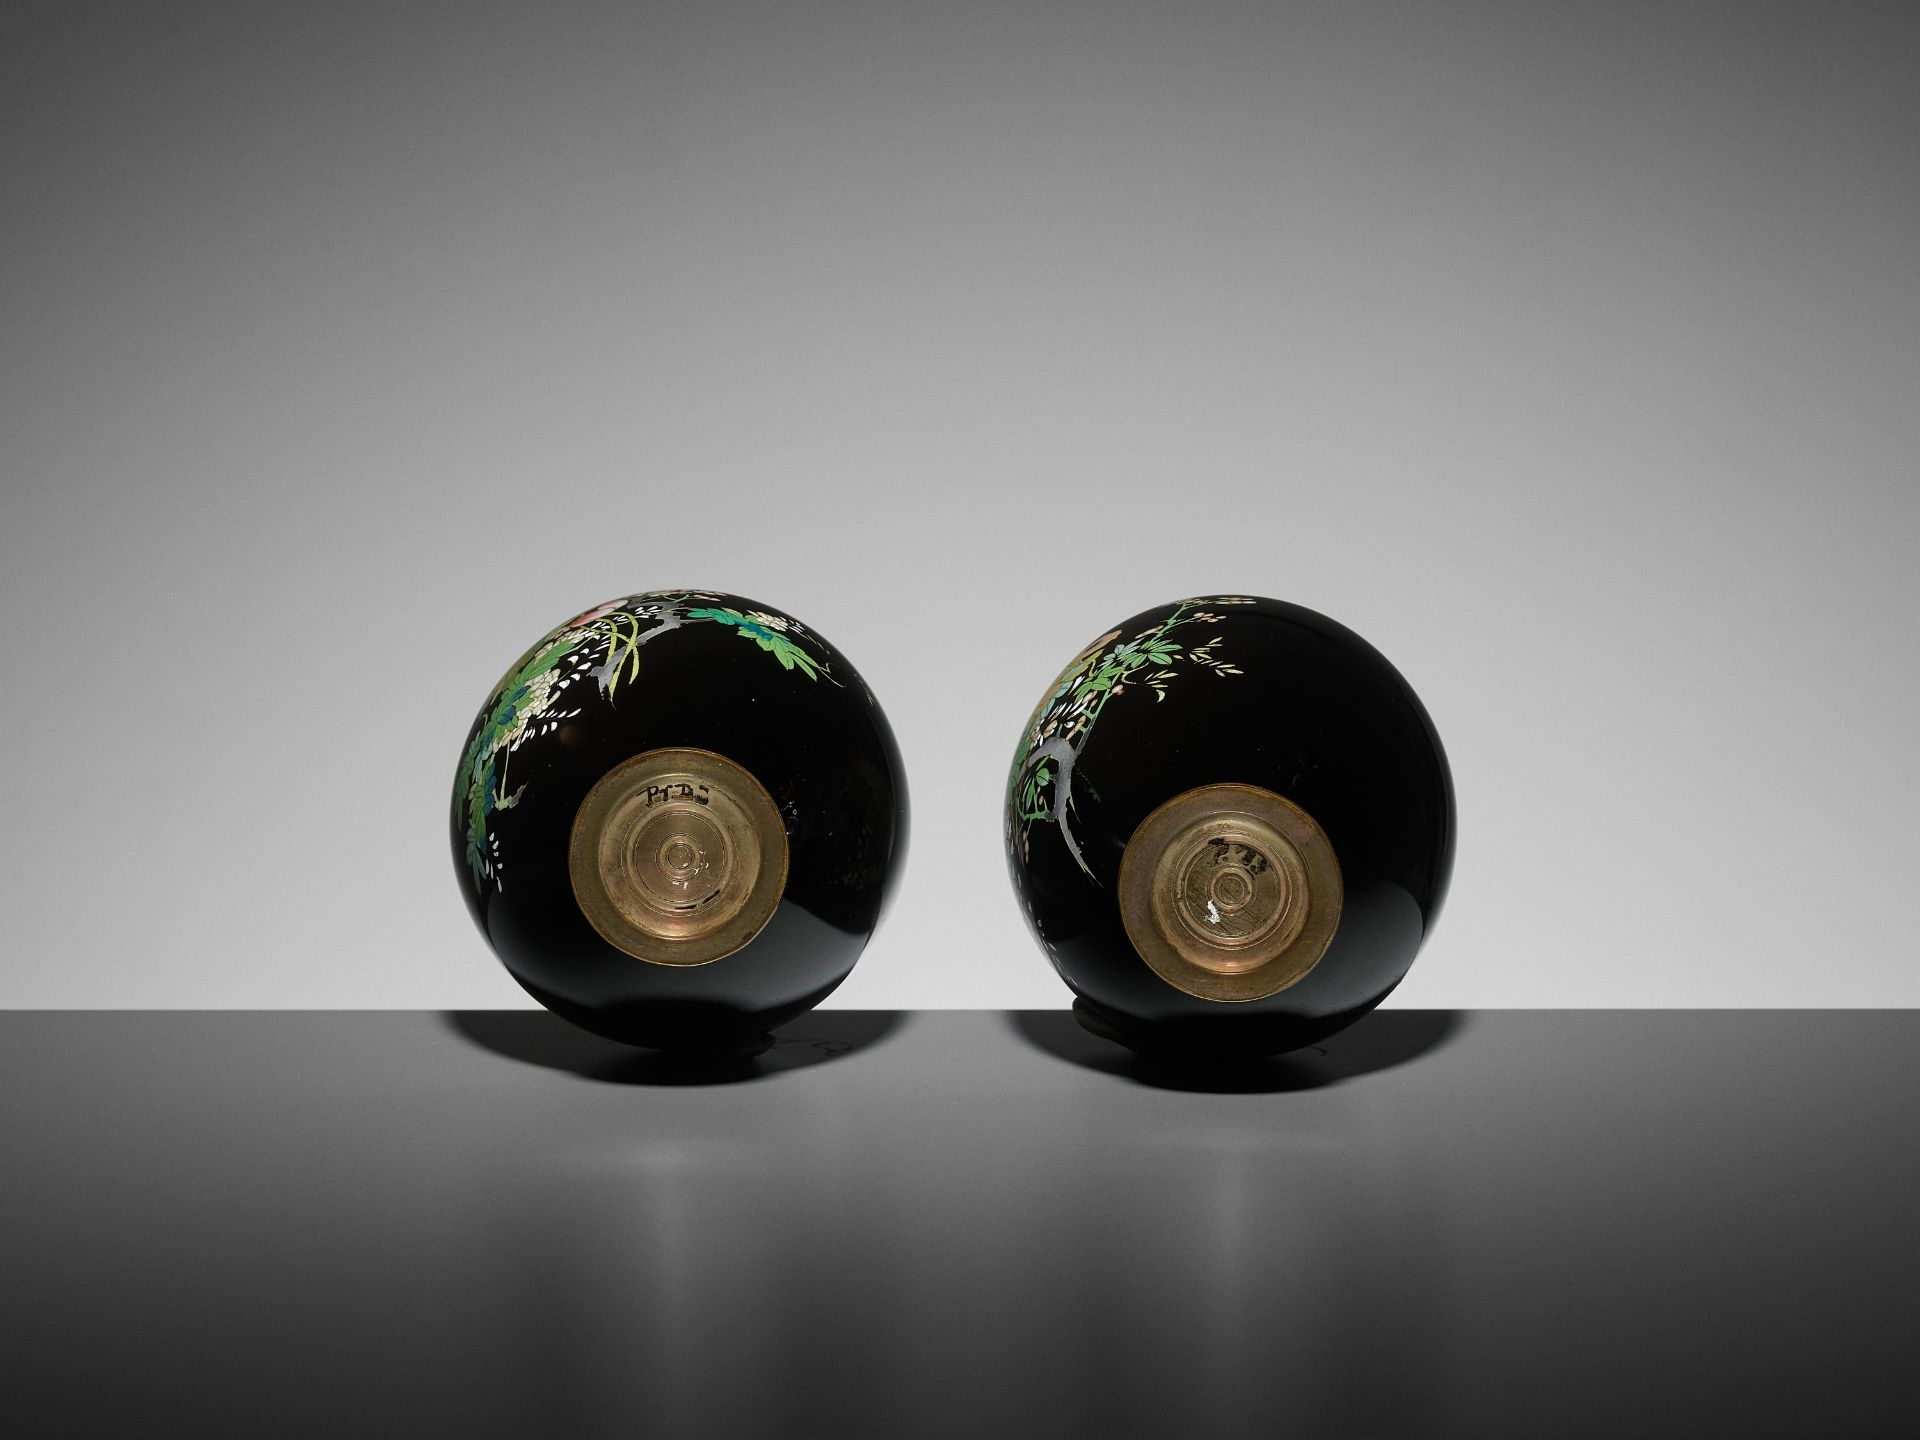 A PAIR OF SMALL CLOISONNE VASES - Image 7 of 7